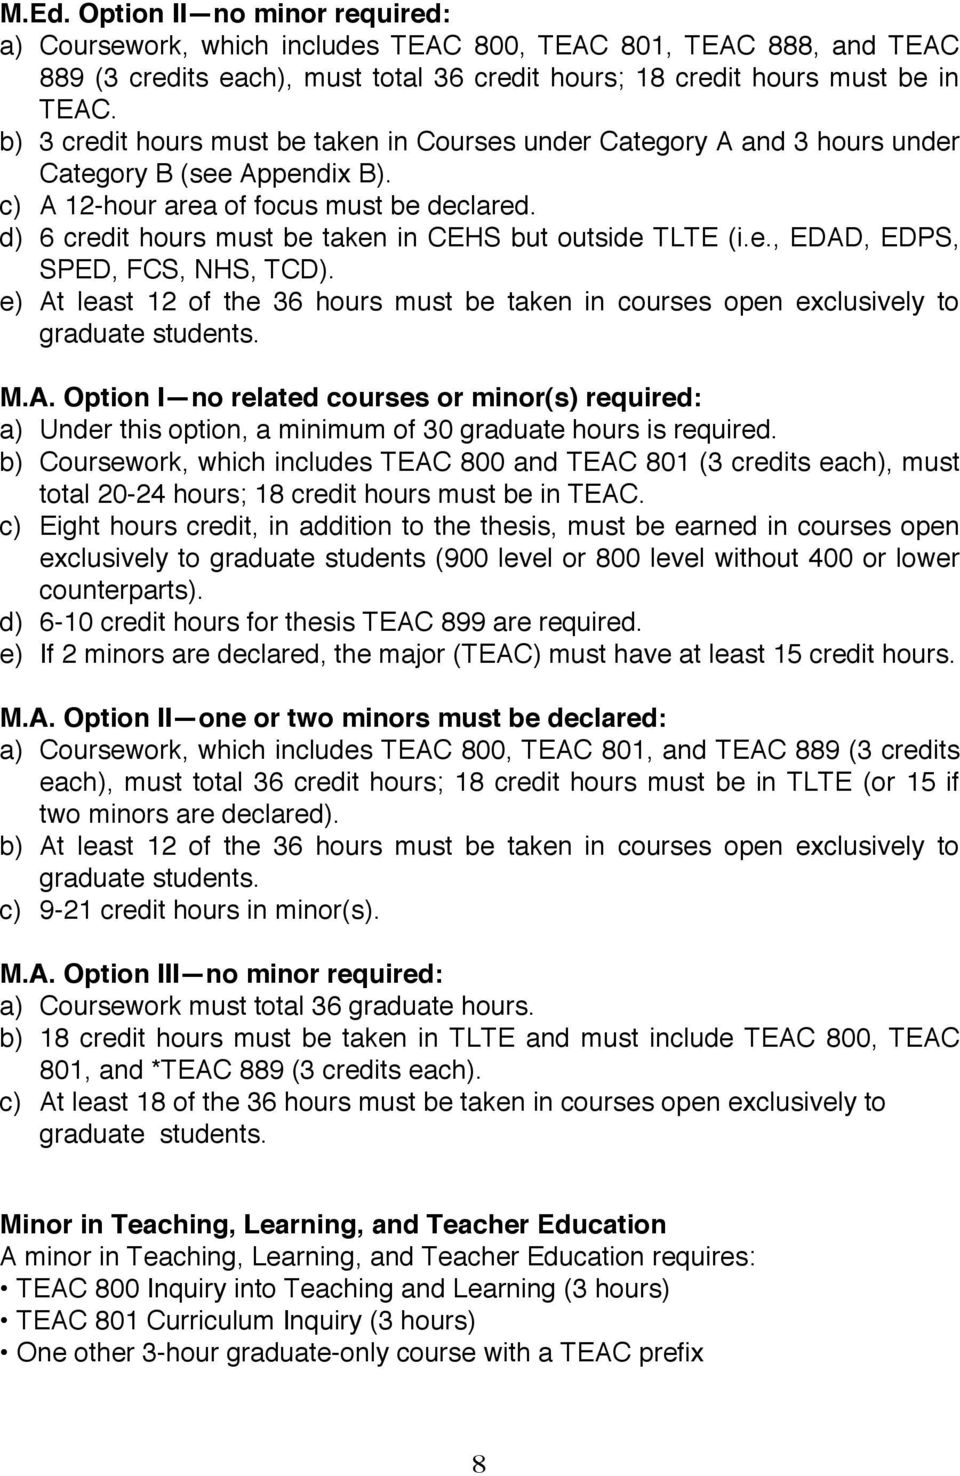 d) 6 credit hours must be taken in CEHS but outside TLTE (i.e., EDAD, EDPS, SPED, FCS, NHS, TCD). e) At least 12 of the 36 hours must be taken in courses open exclusively to graduate students. M.A. Option I no related courses or minor(s) required: a) Under this option, a minimum of 30 graduate hours is required.